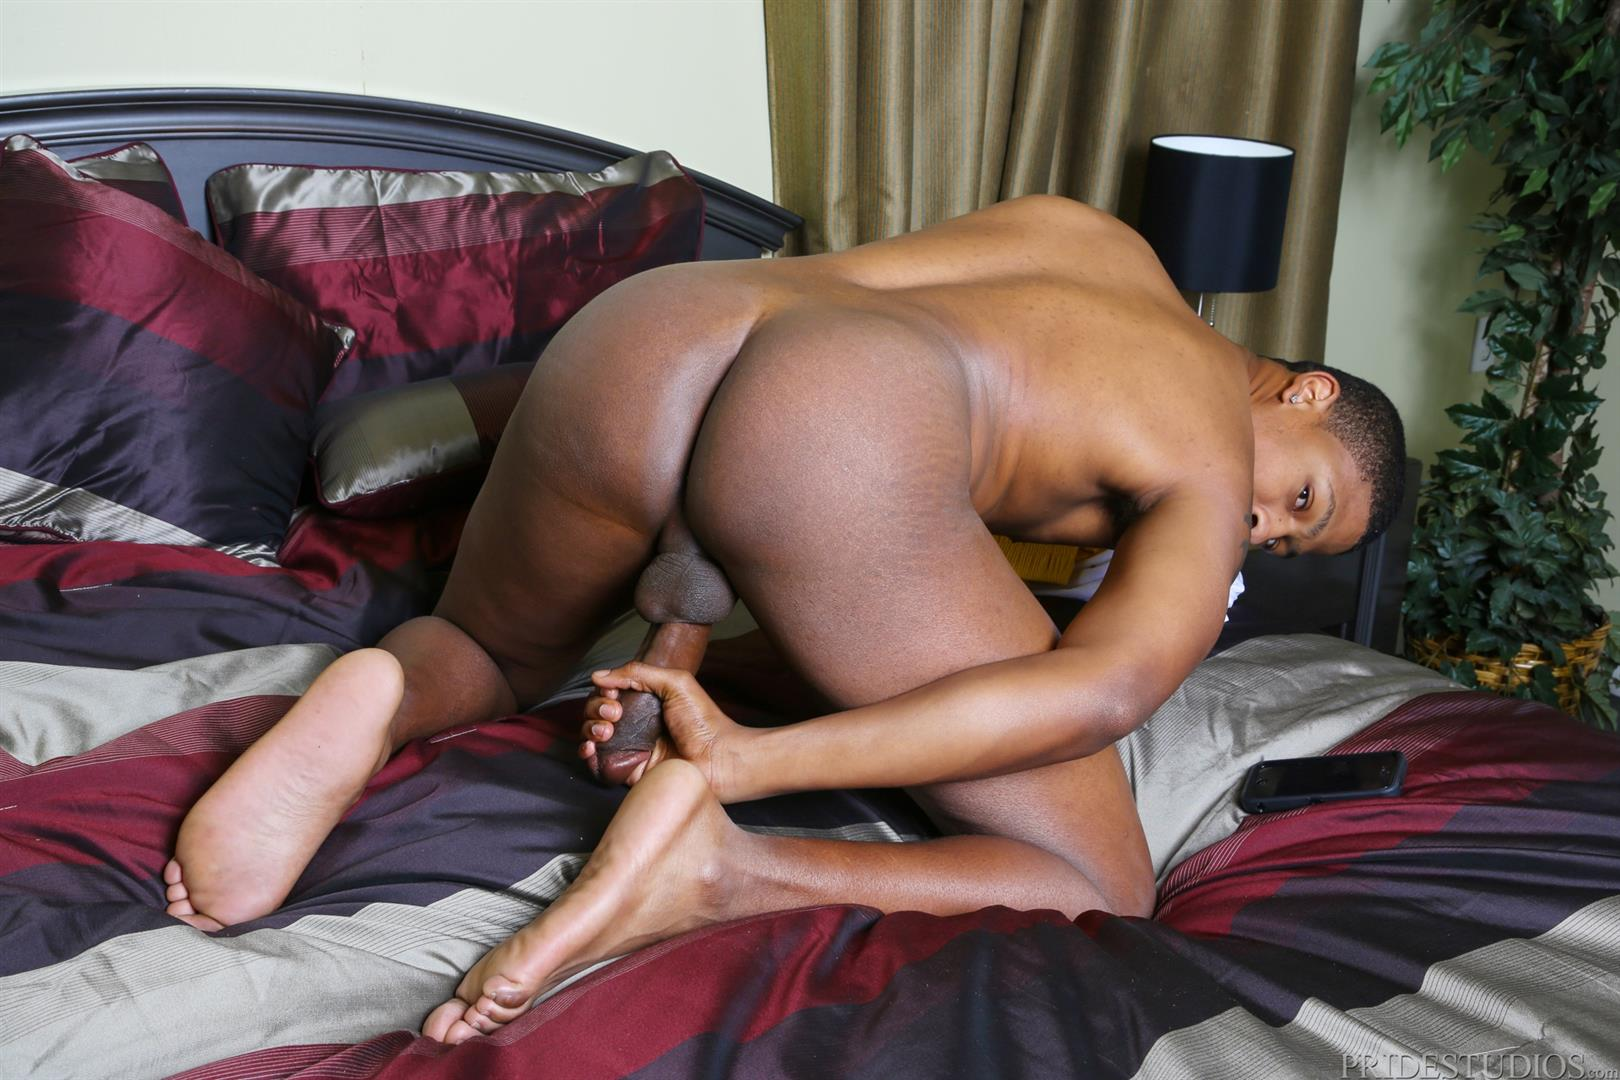 Extra Big Dicks Dontae Morningwood Thug Jerking Off Big Black Dick Amateur Gay Porn 10 Young Black Guy With A Thick Ass Jerks His Big Black Cock